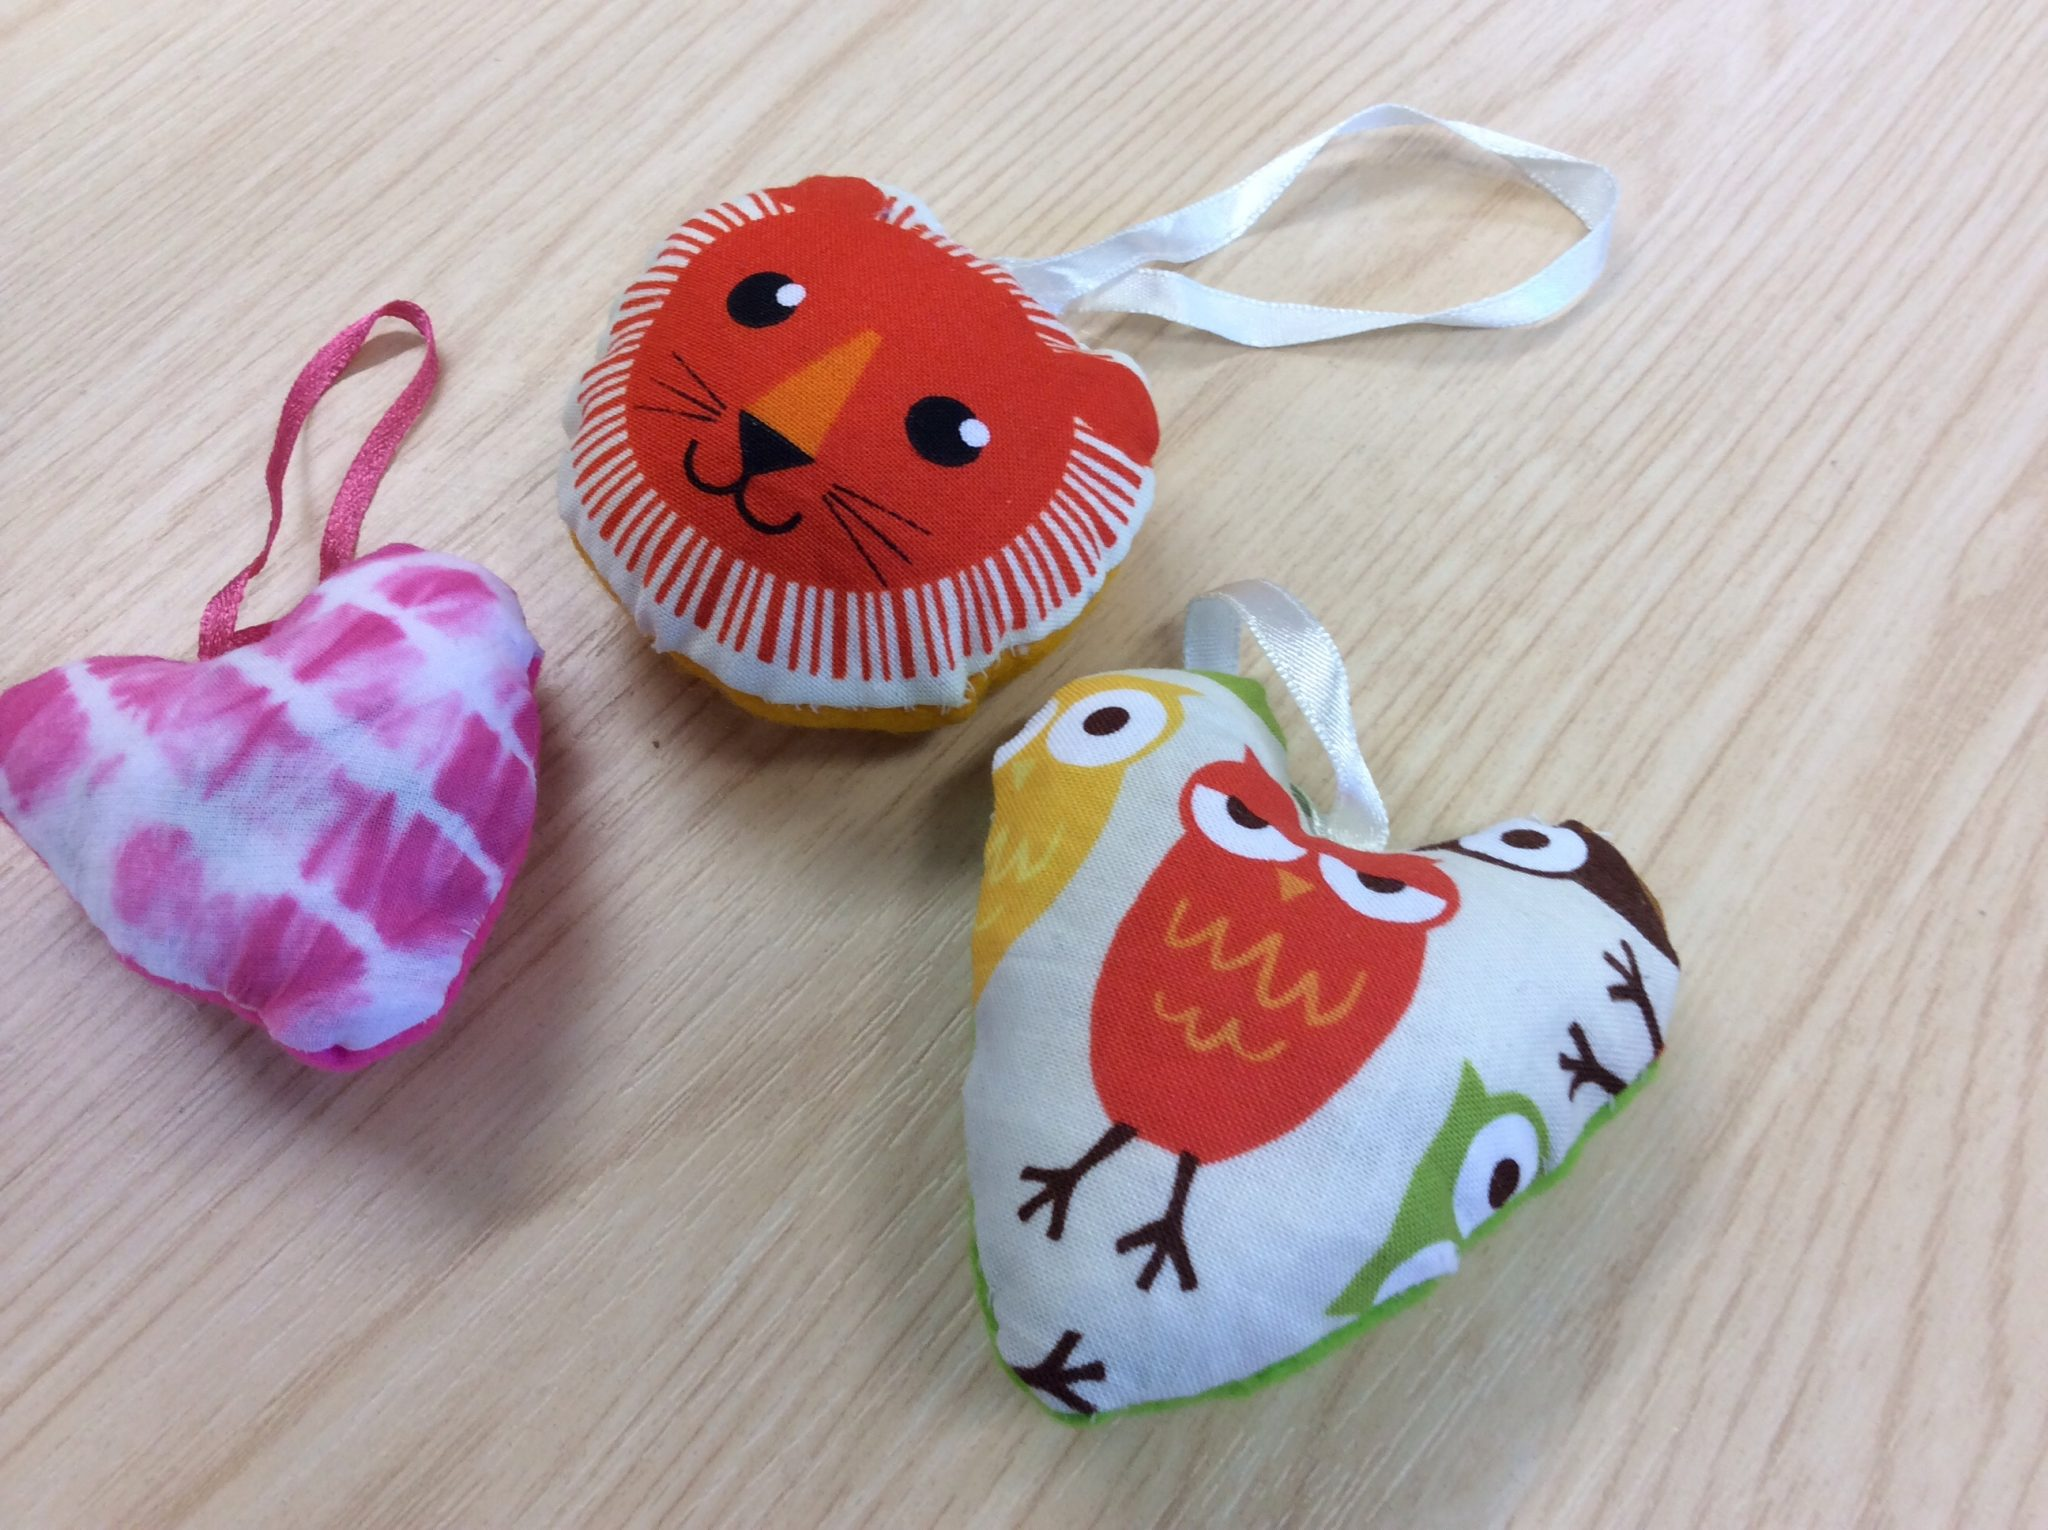 Spring – daffodils and making cotton hearts lavender bags